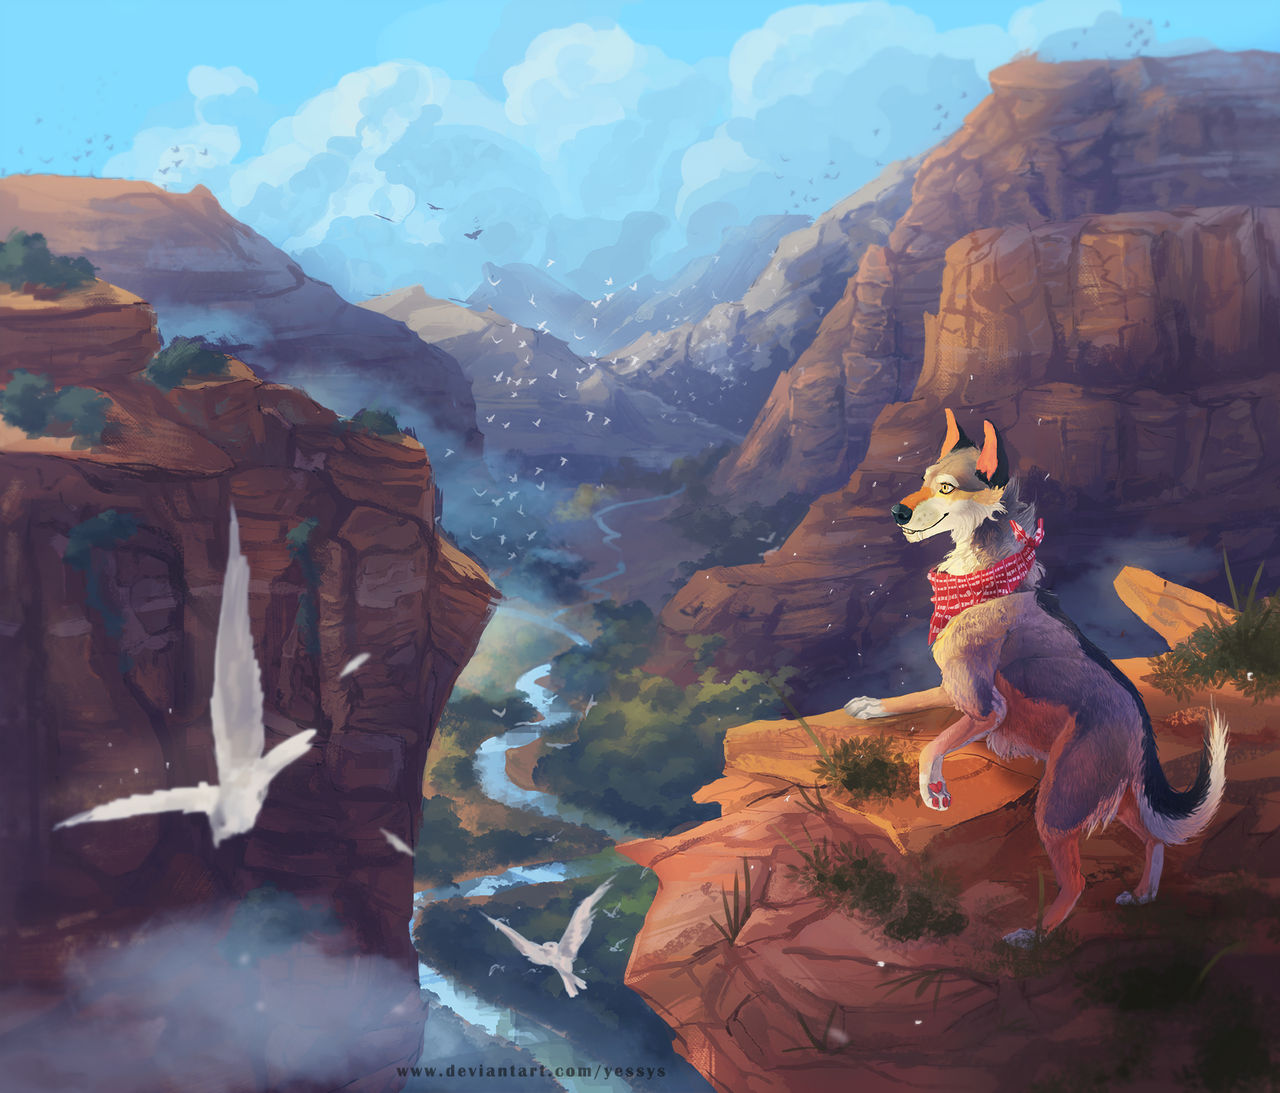 Canyon - commission by Yessys